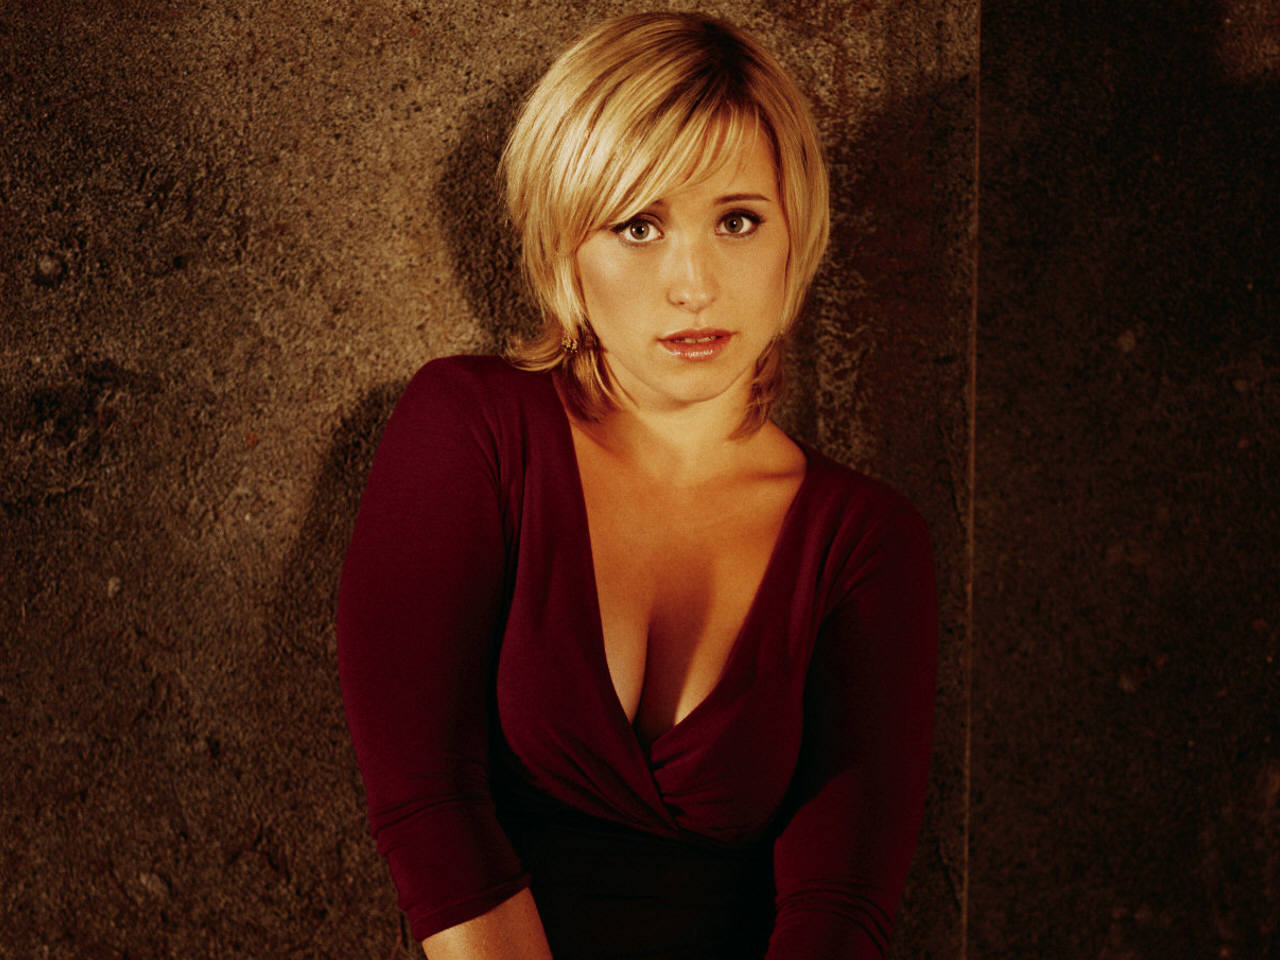 Allison Mack Hot Pictures Photo Gallery Wallpapers 1280x960